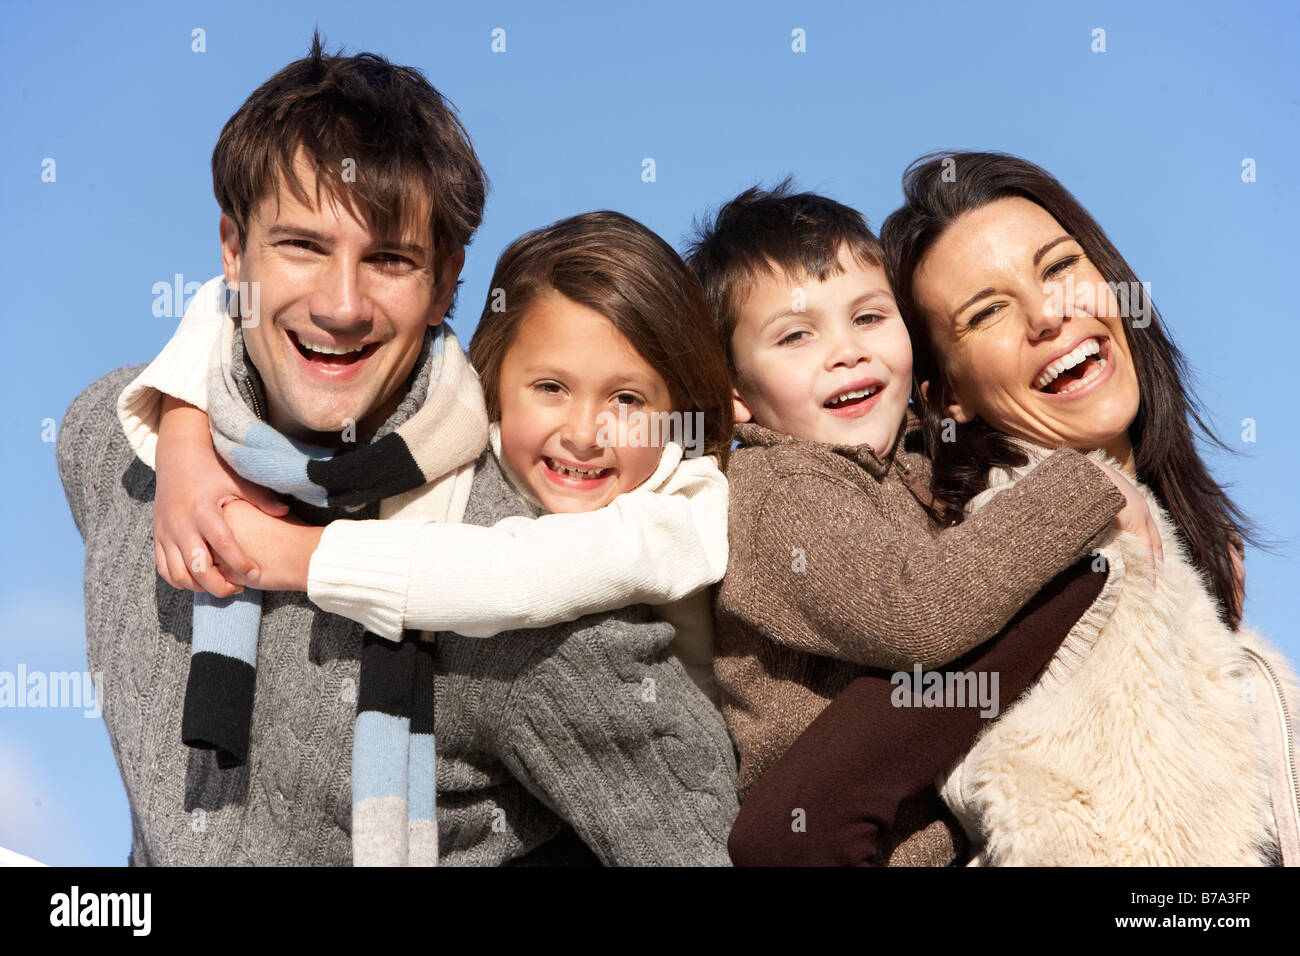 Parents Piggy Backing Their Children - Stock Image